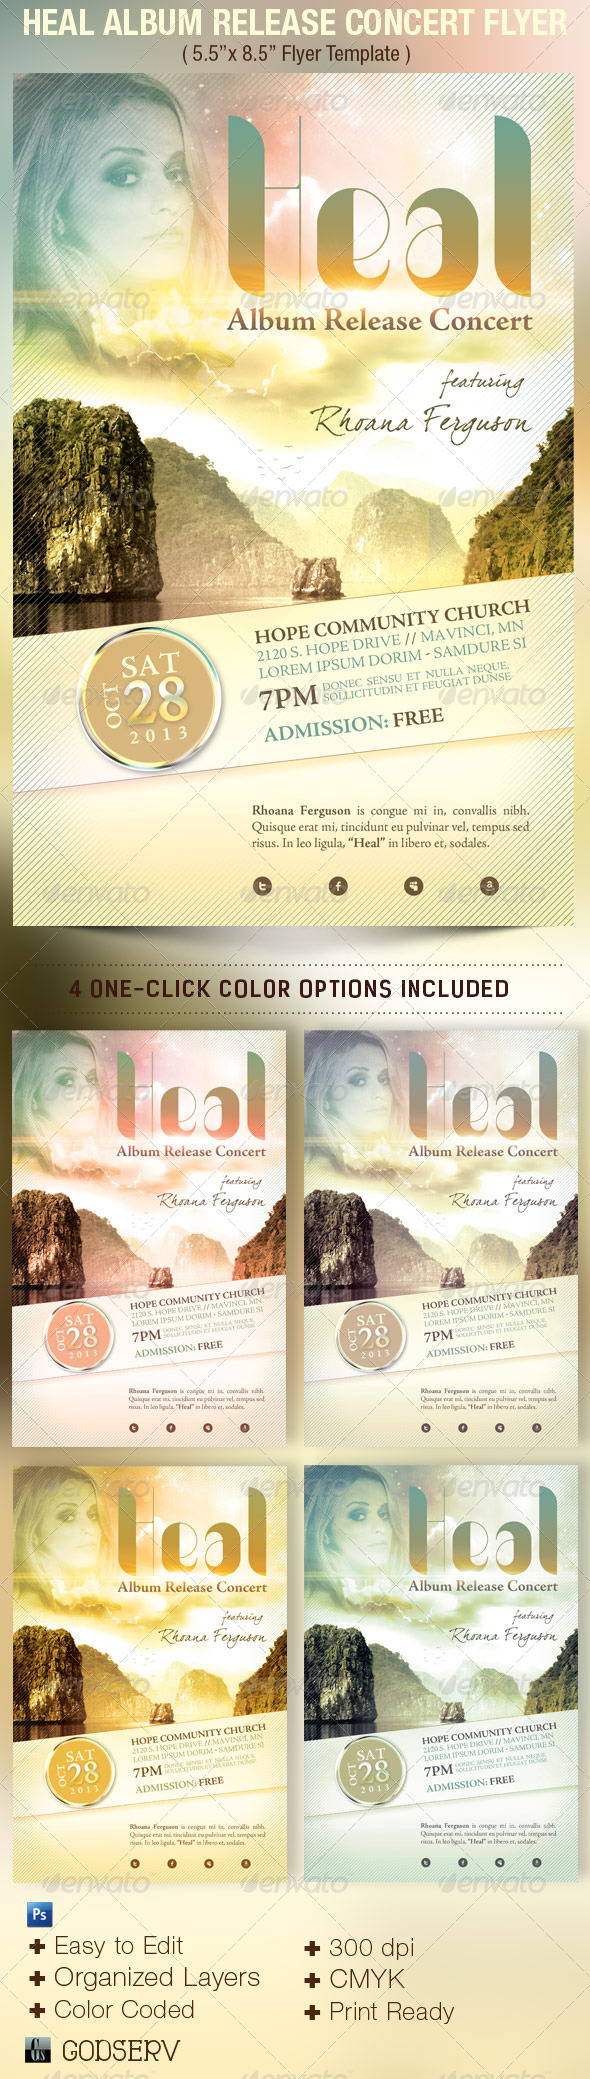 Heal Album Release Concert Flyer Template - Church Flyers